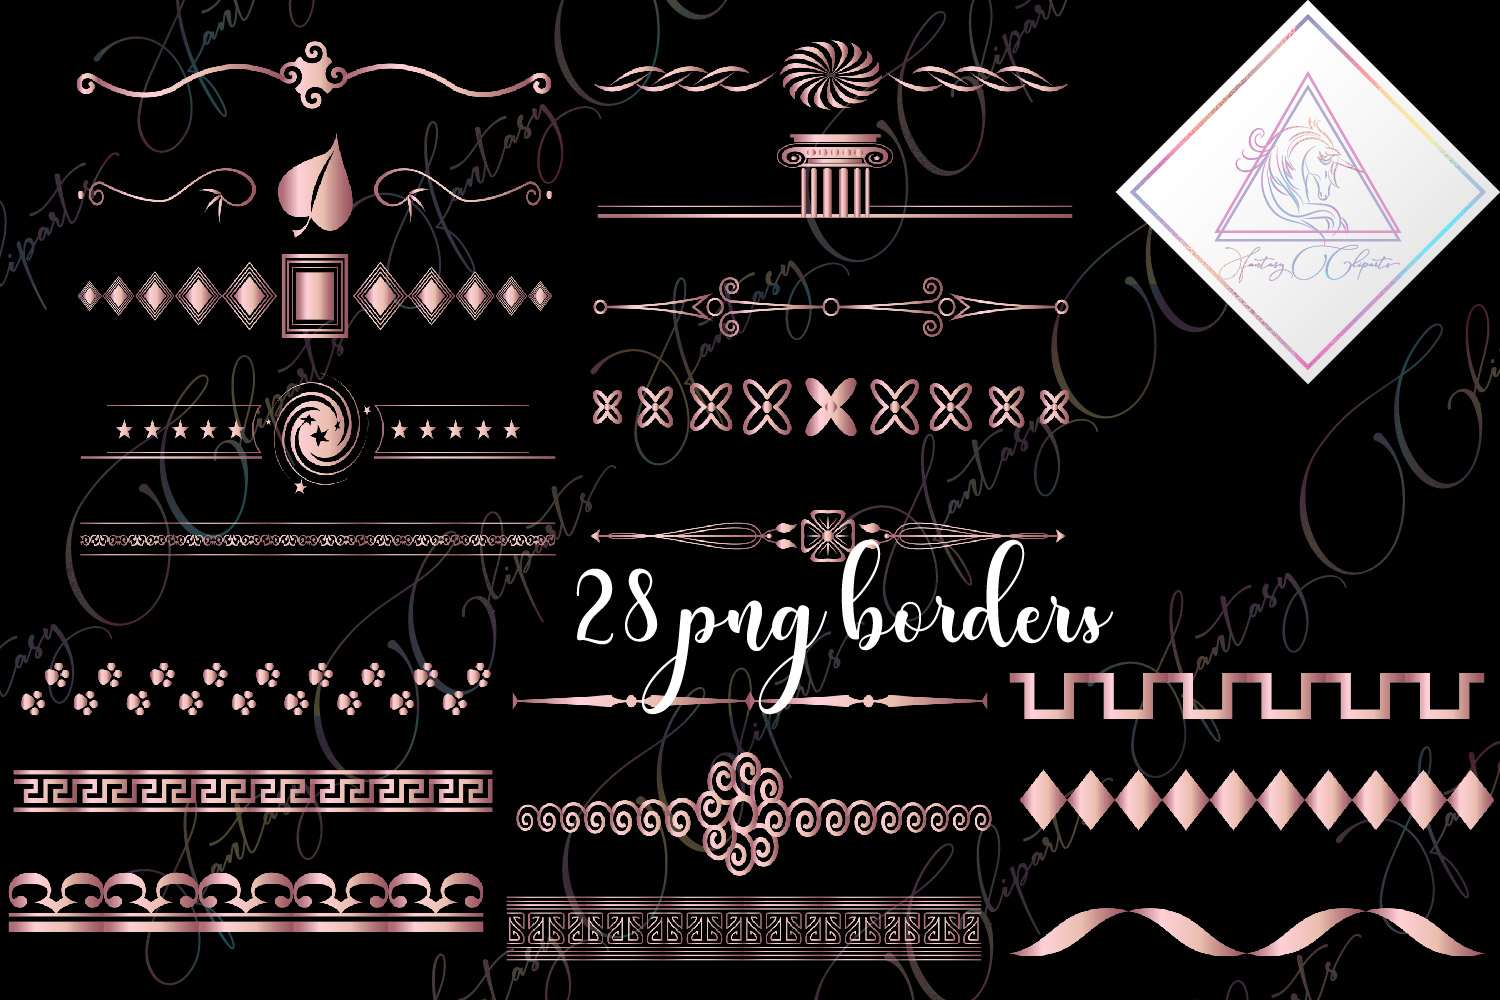 Download Free Rose Gold Borders Clipart Graphic By Fantasycliparts Creative Fabrica for Cricut Explore, Silhouette and other cutting machines.